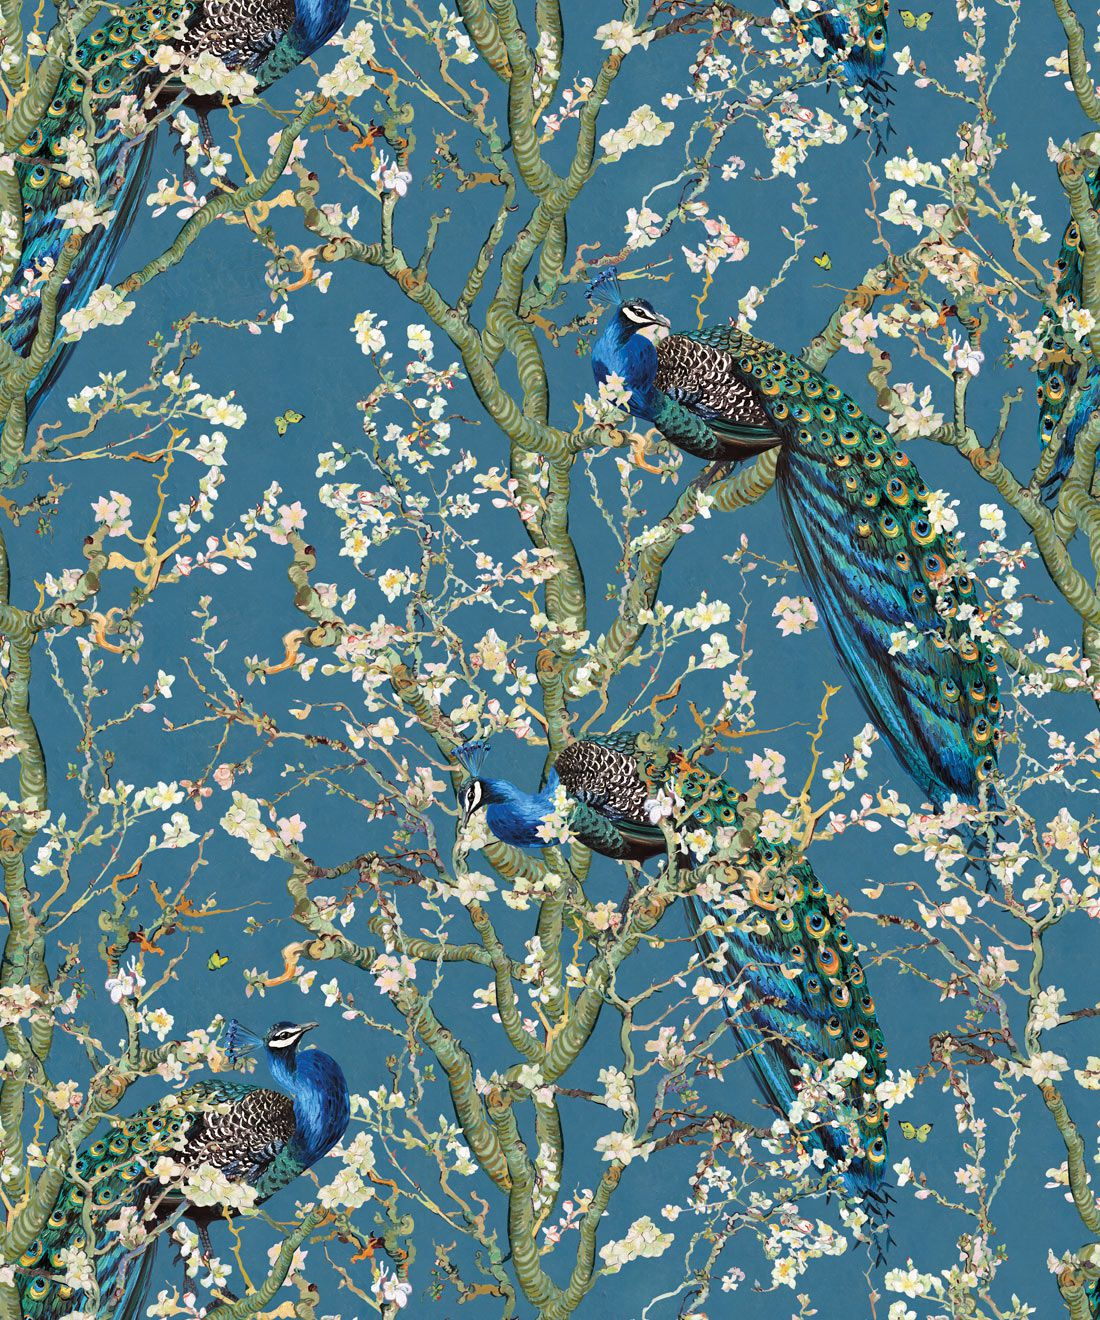 Almond Blossom Wallpaper • Chinoiserie Wallpaper • Wallpaper with Peacocks • Royal Blue Wallpaper •Swatch